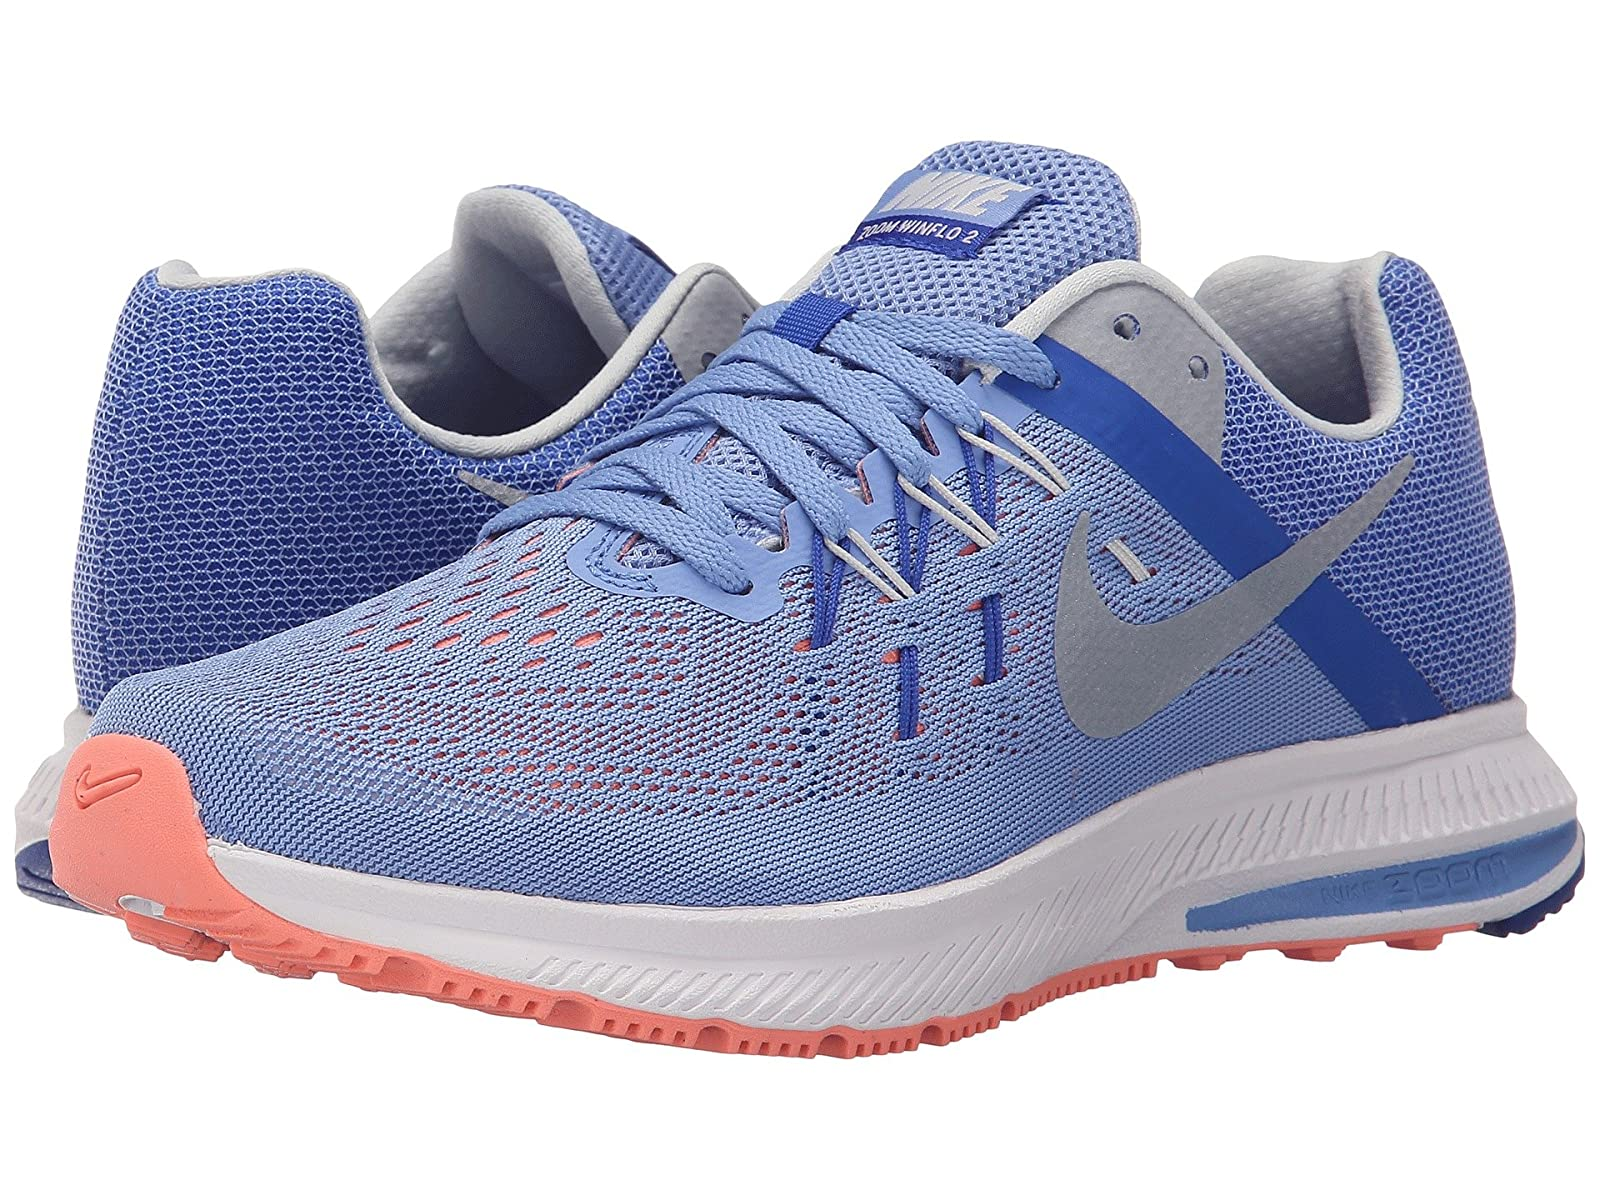 Nike Zoom Winflo 2Cheap and distinctive eye-catching shoes